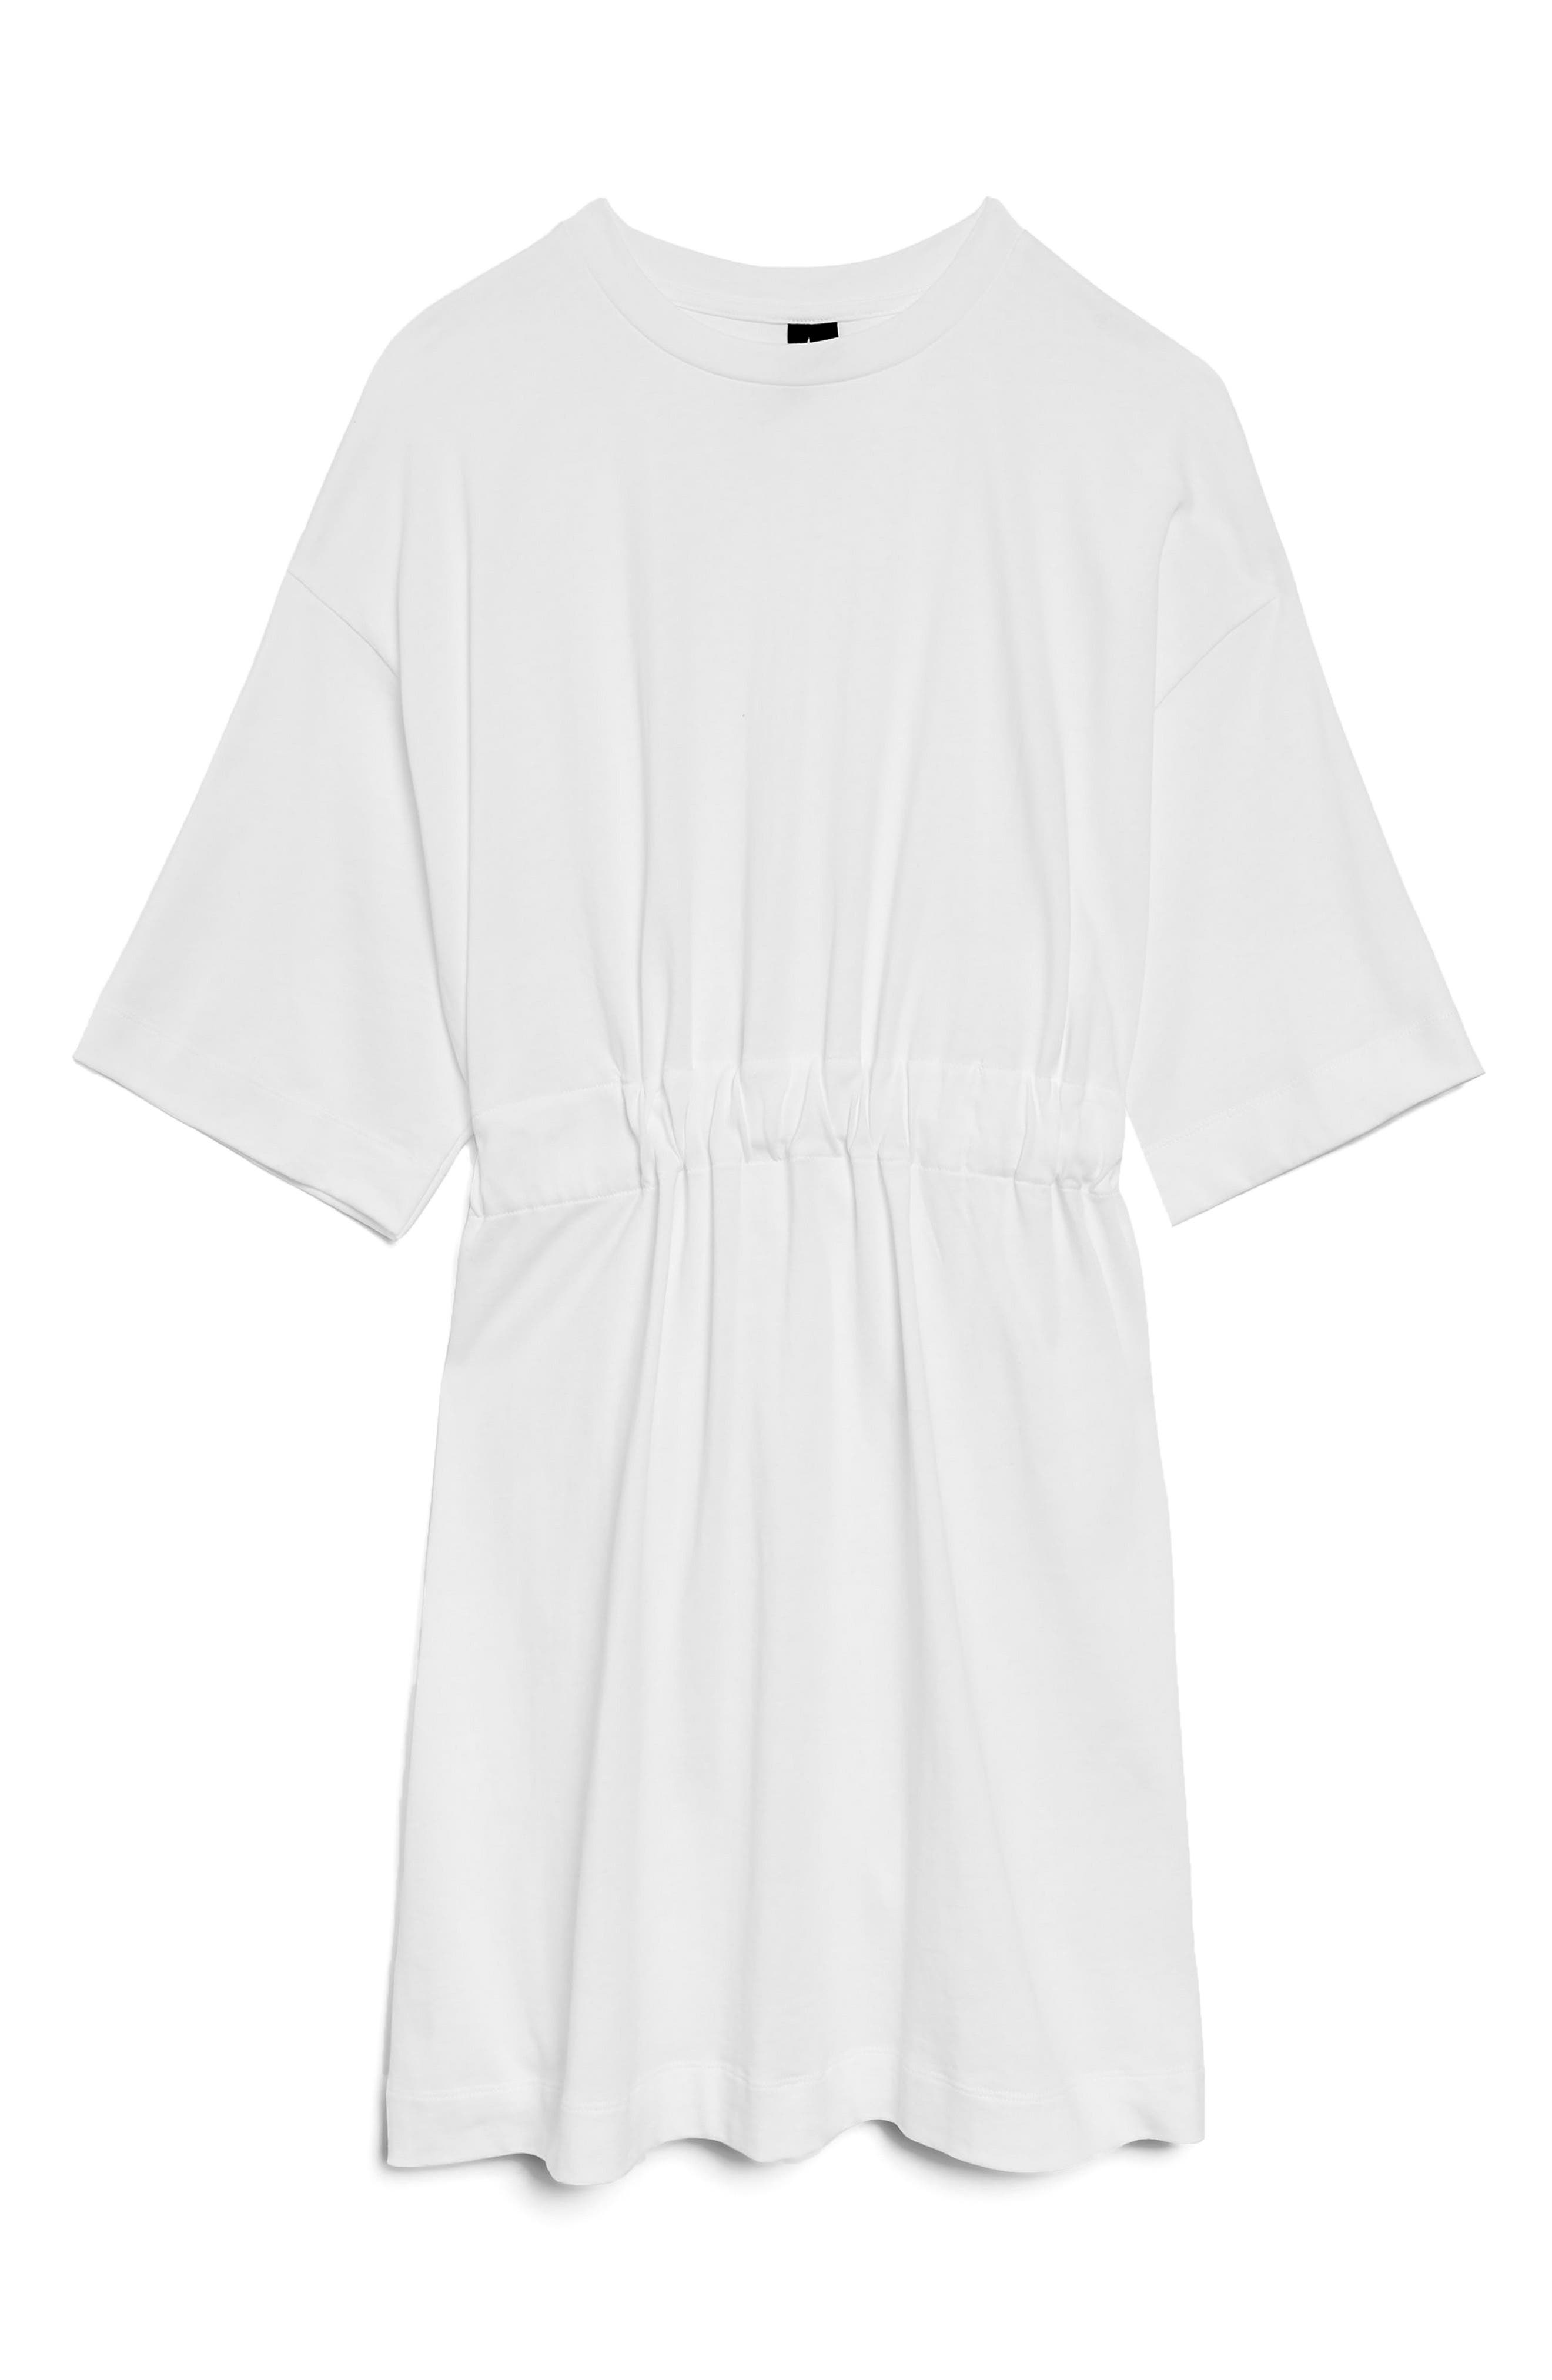 Alternate Image 1 Selected - Topshop Boutique Drawcord T-Shirt Dress